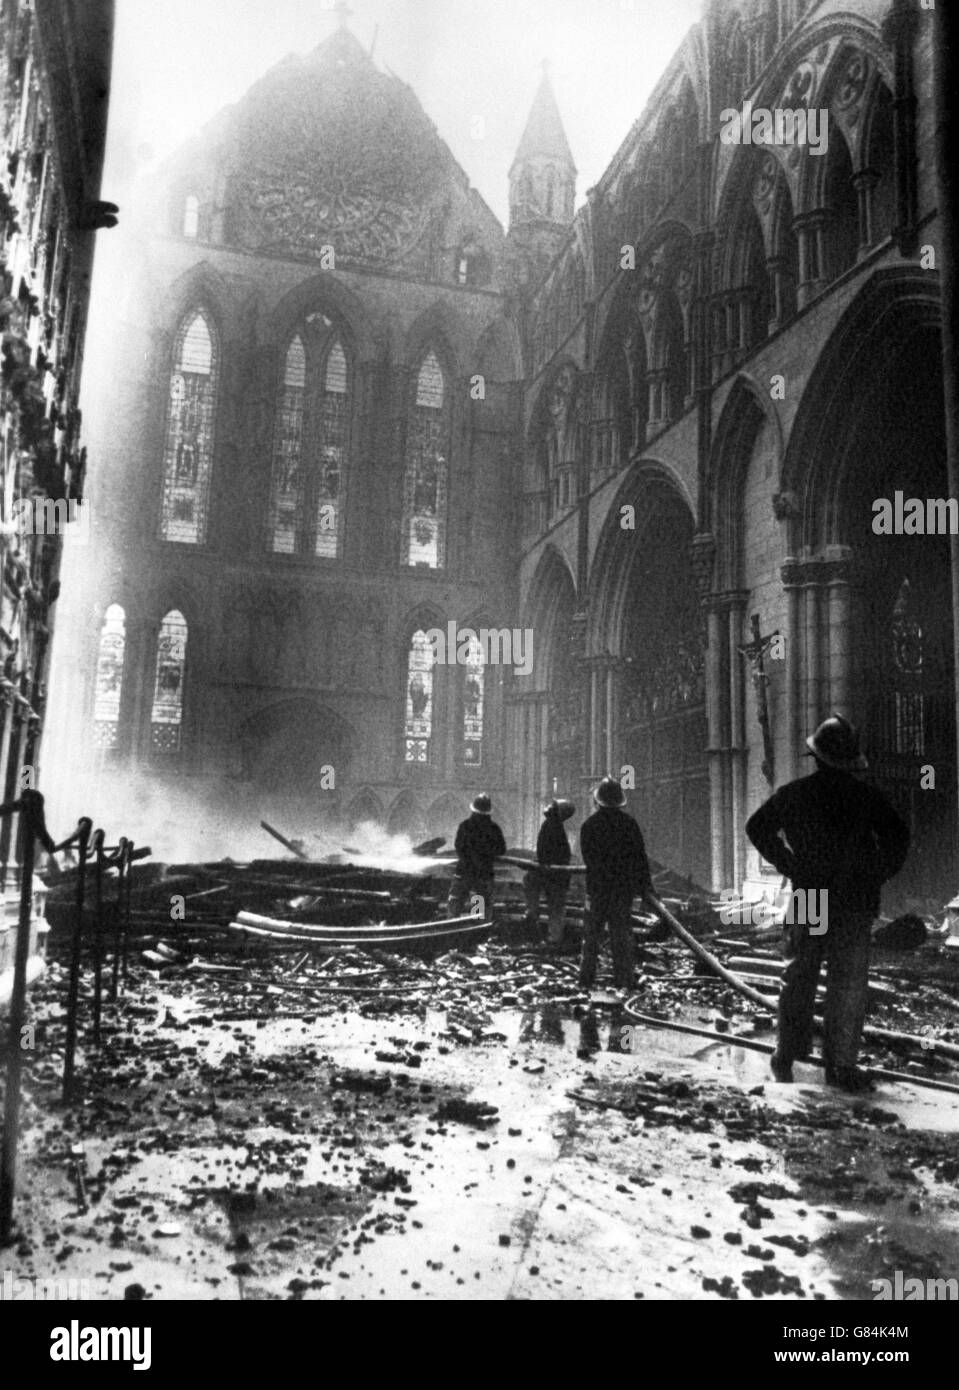 disasters and accidents york minster fire 1984 stock